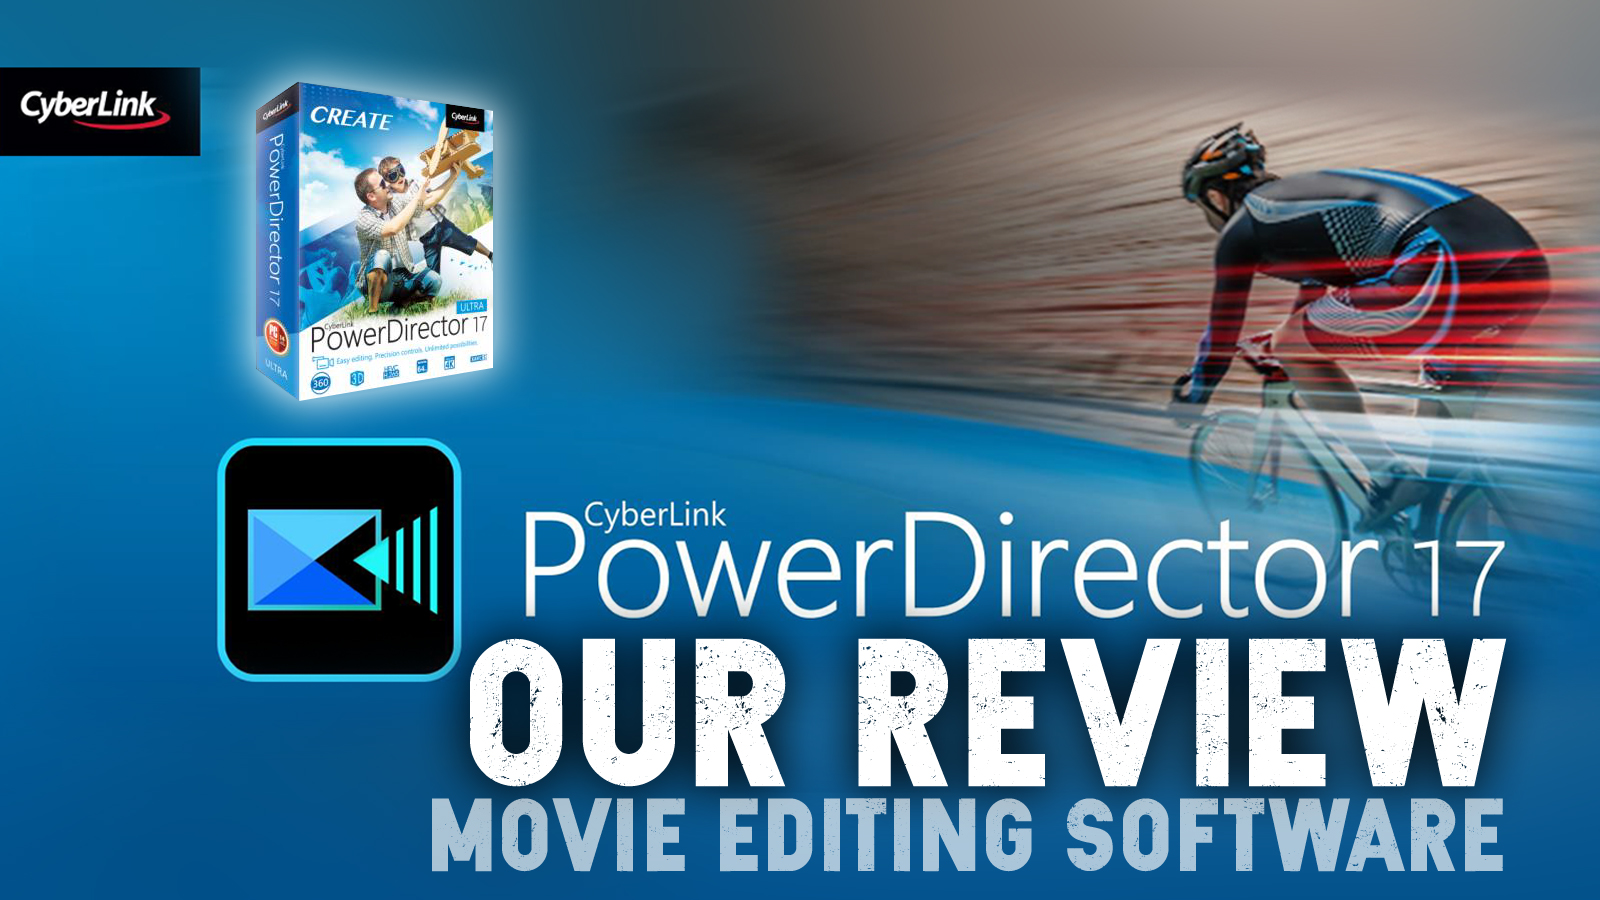 [Review] PowerDirector 17 by Cyberlink